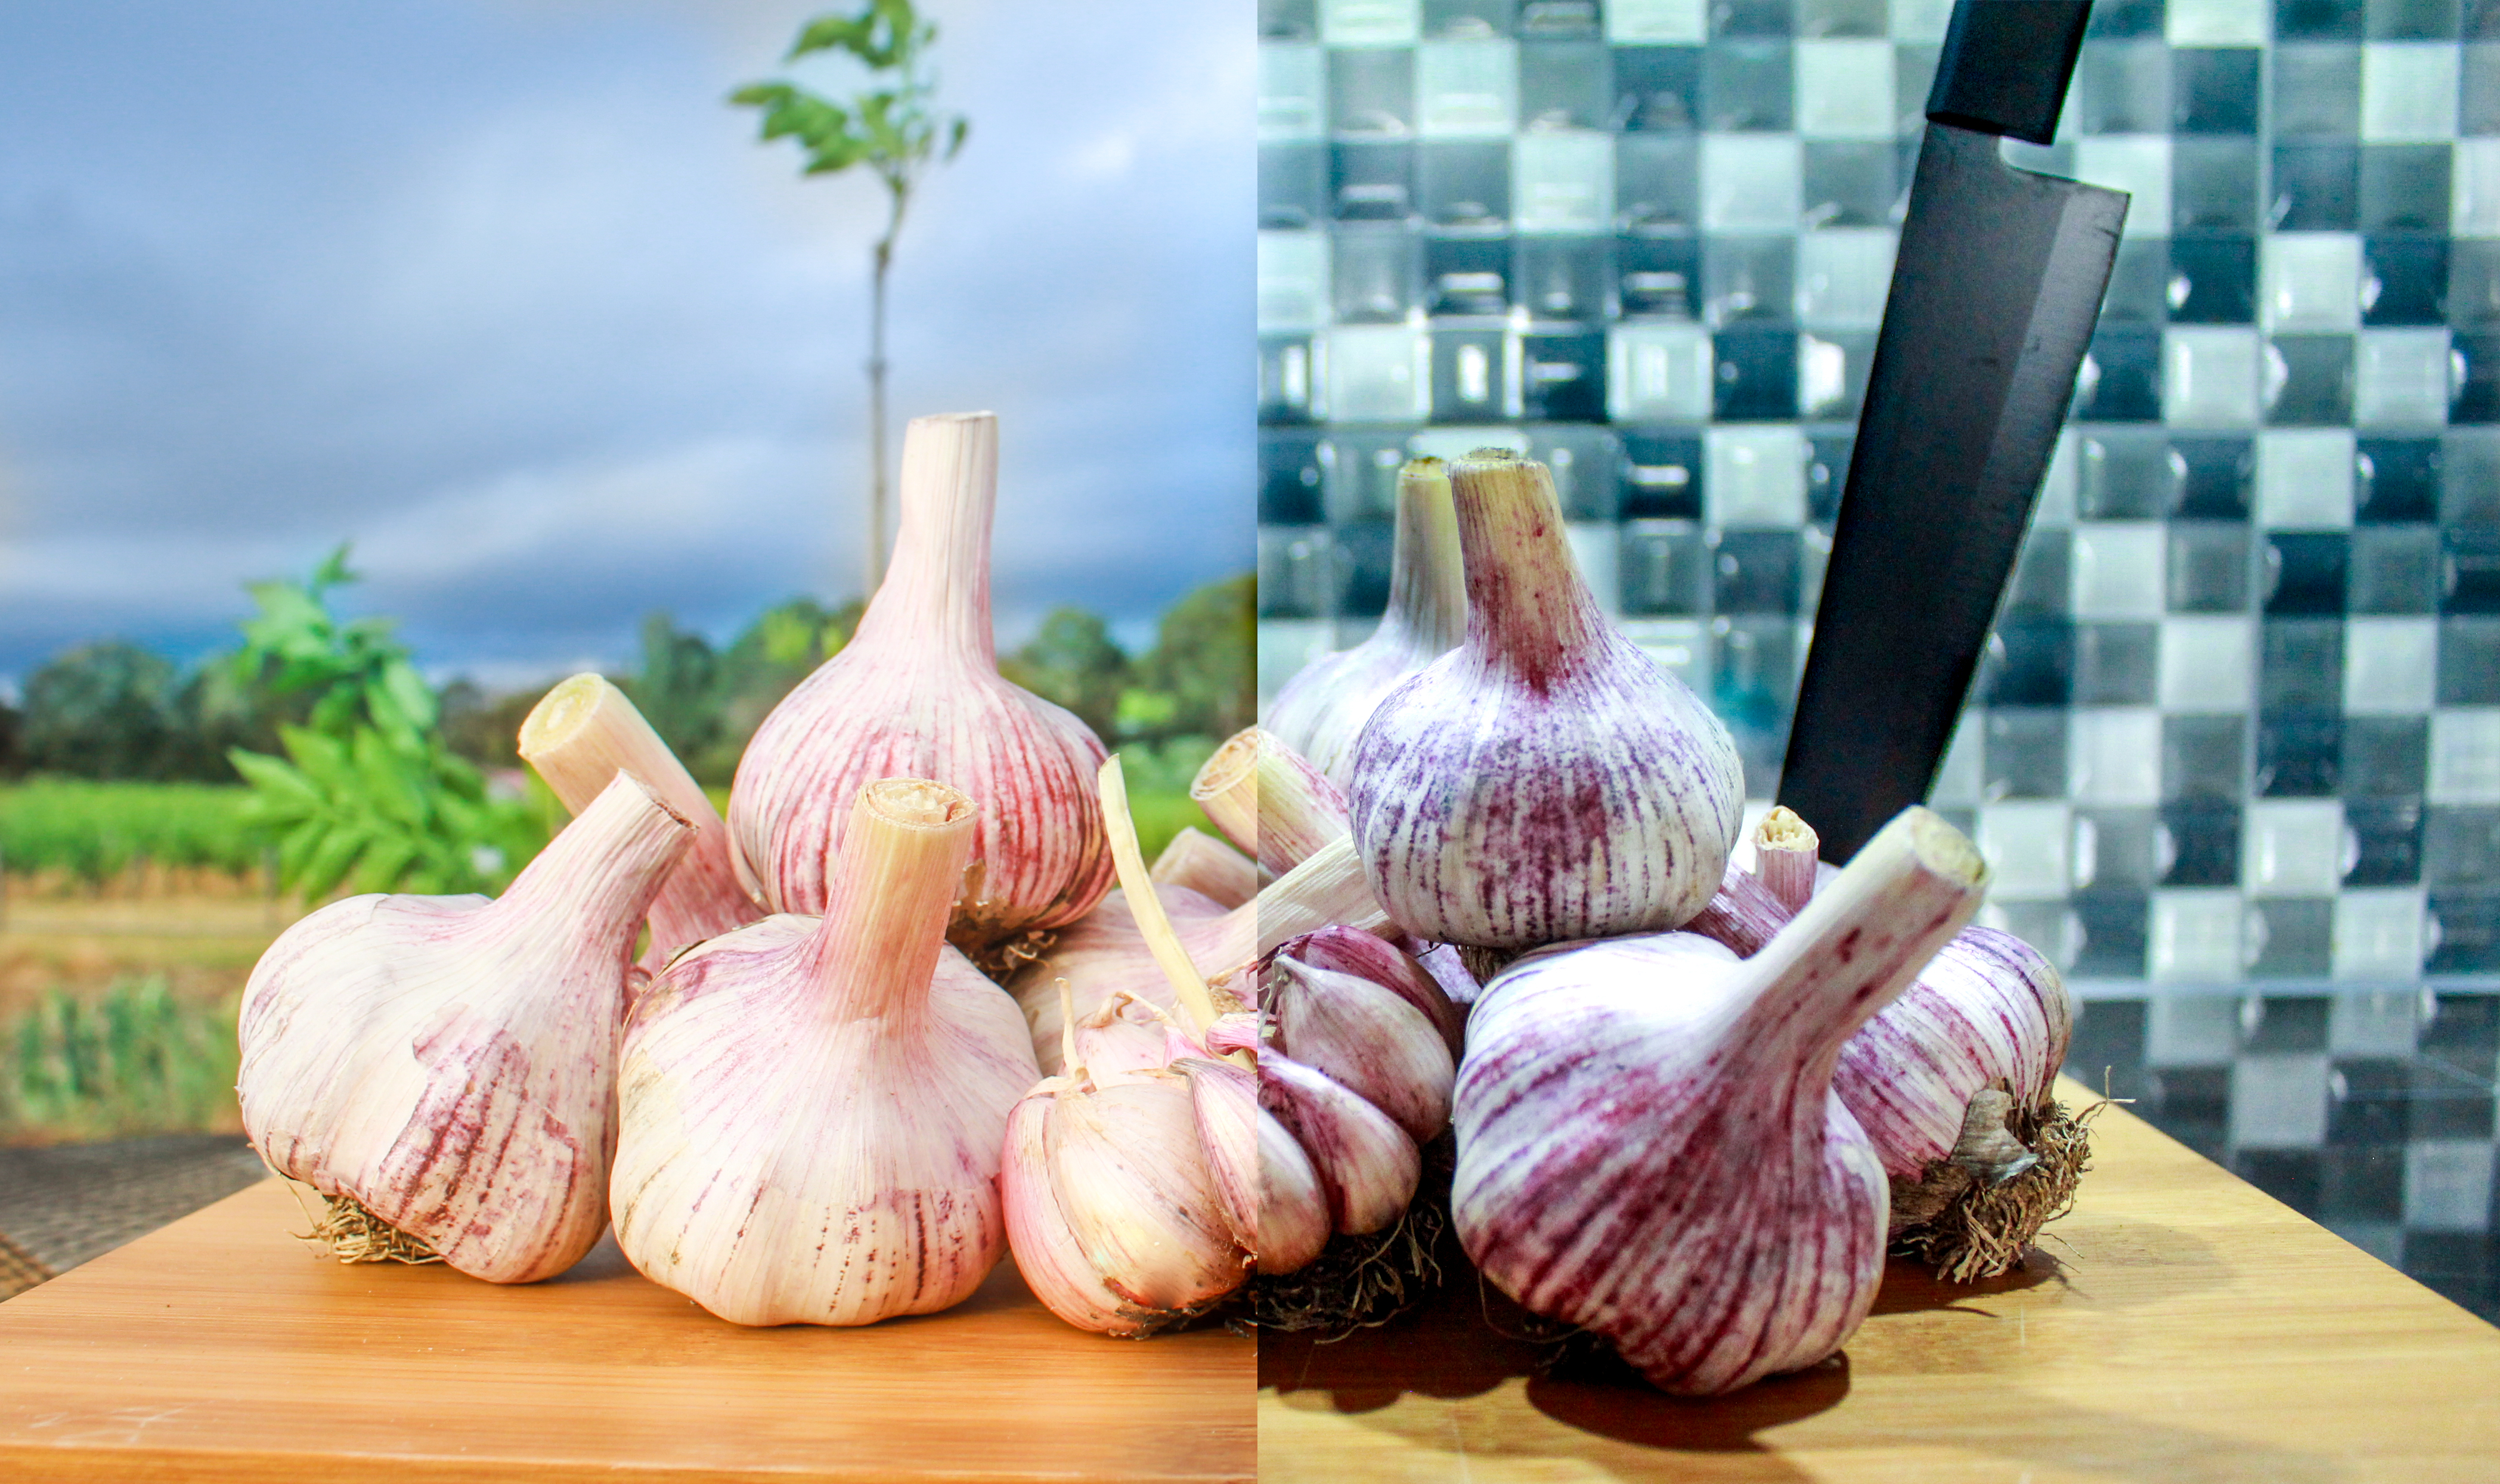 Purple garlic from the farm to the kitchen.